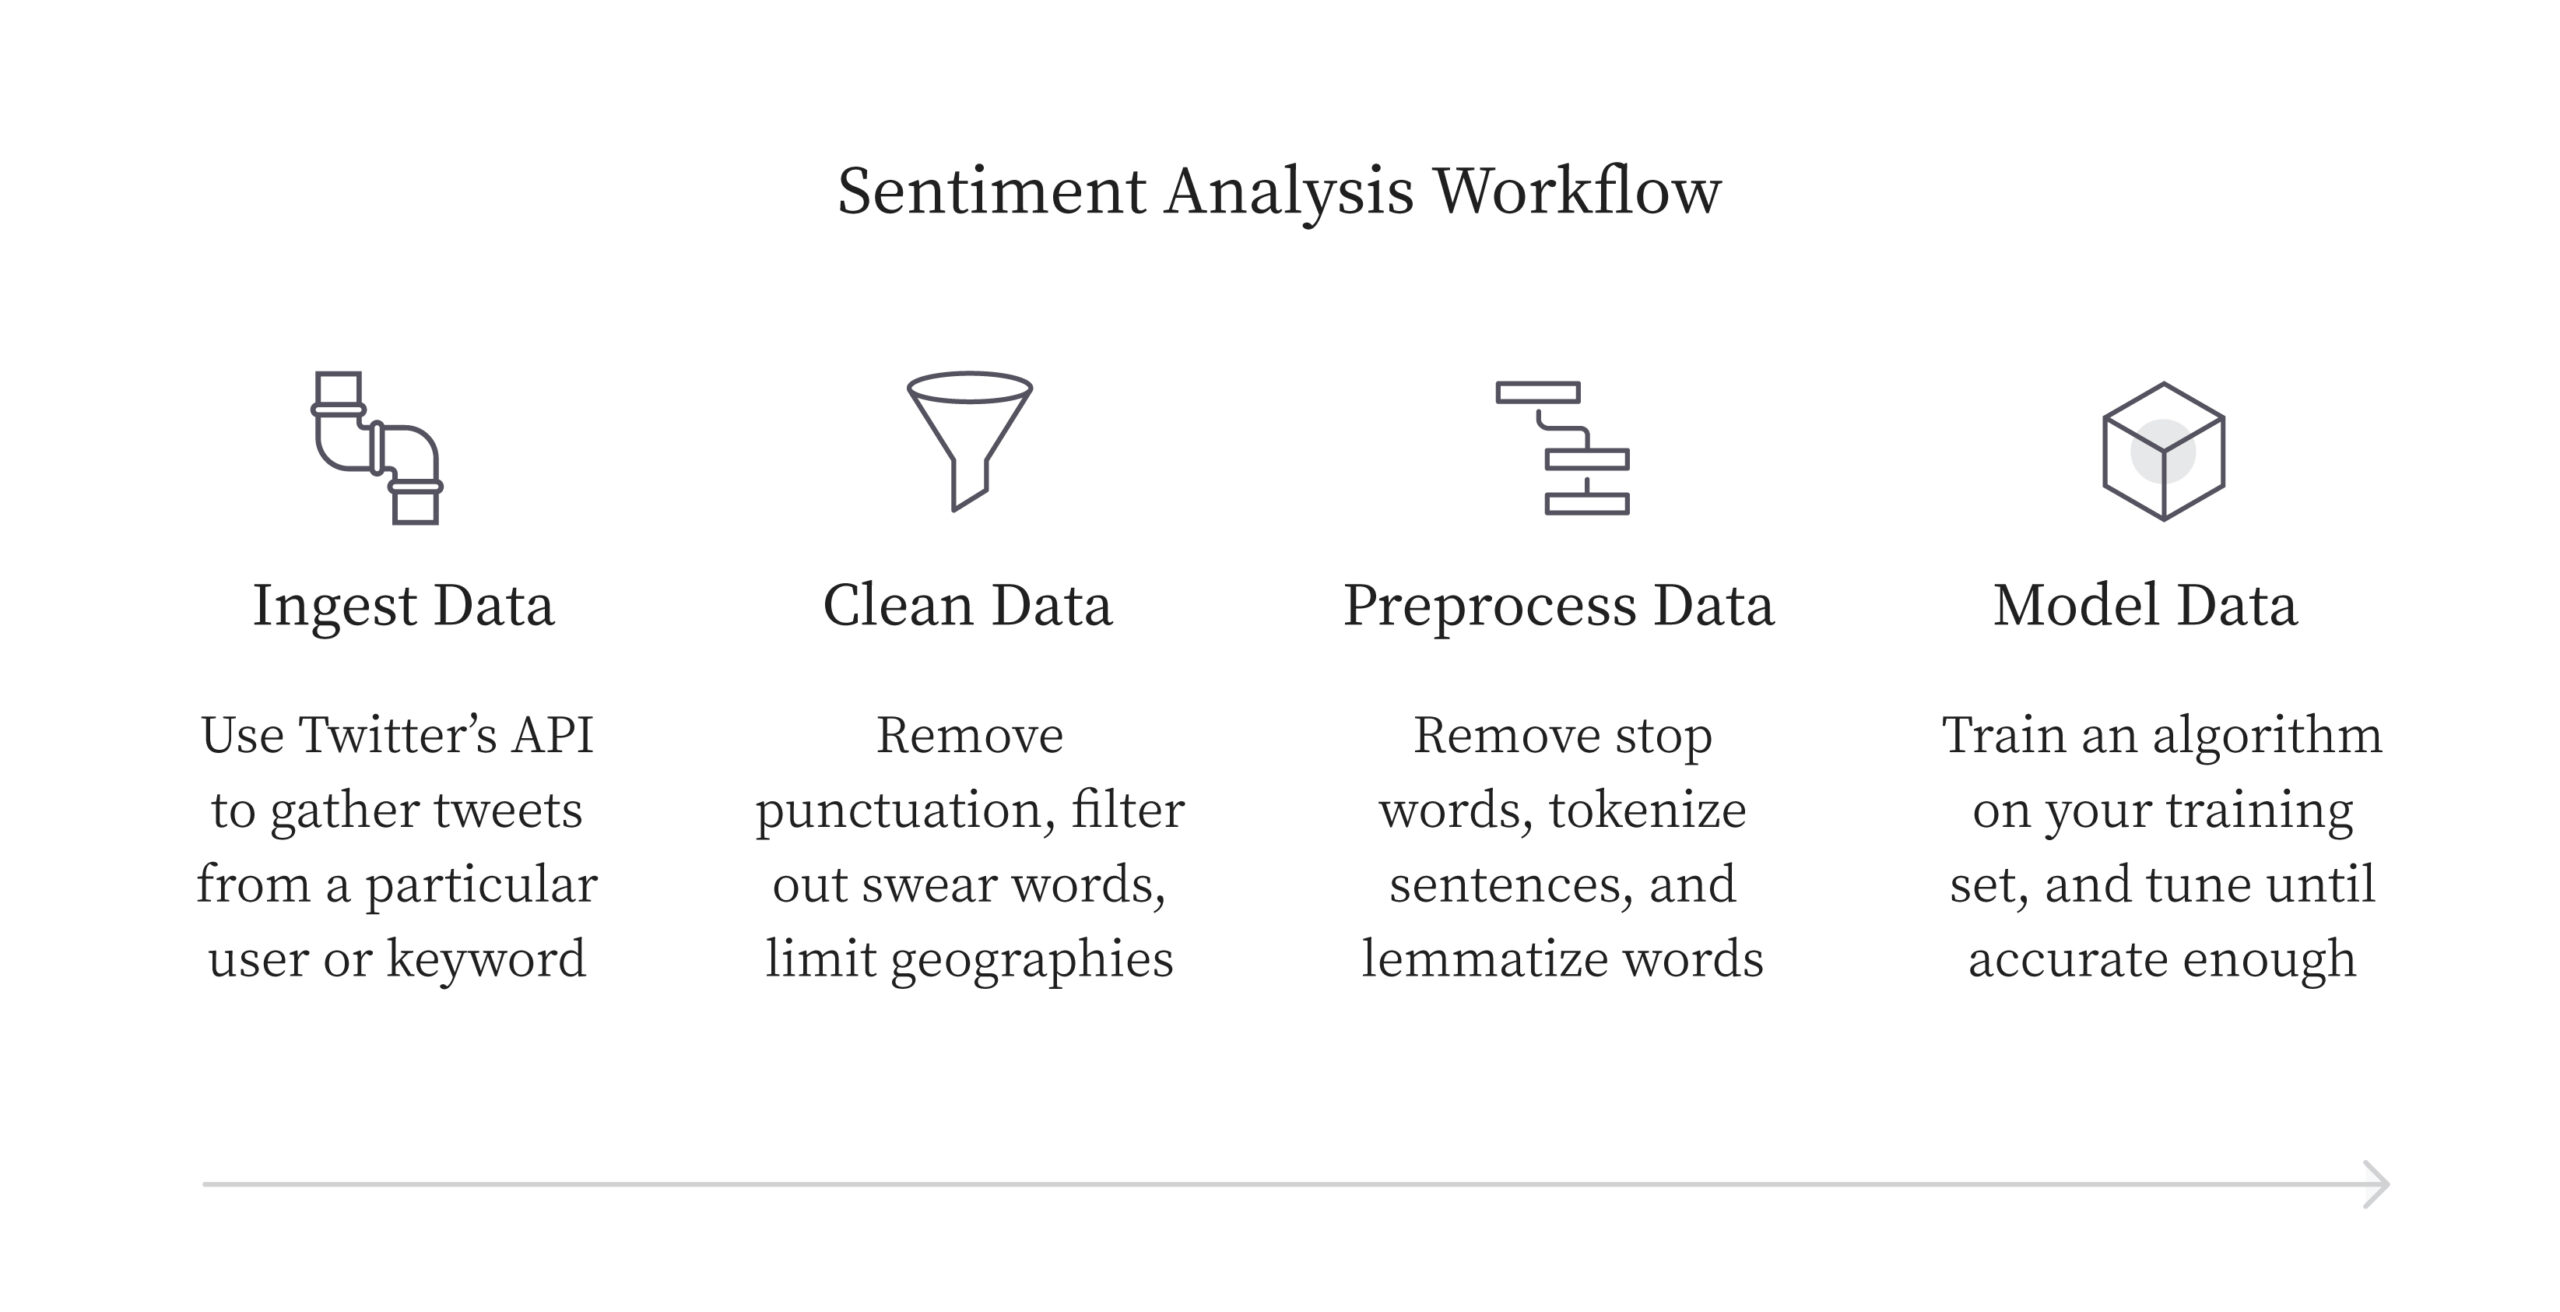 Sentiment analysis workflow